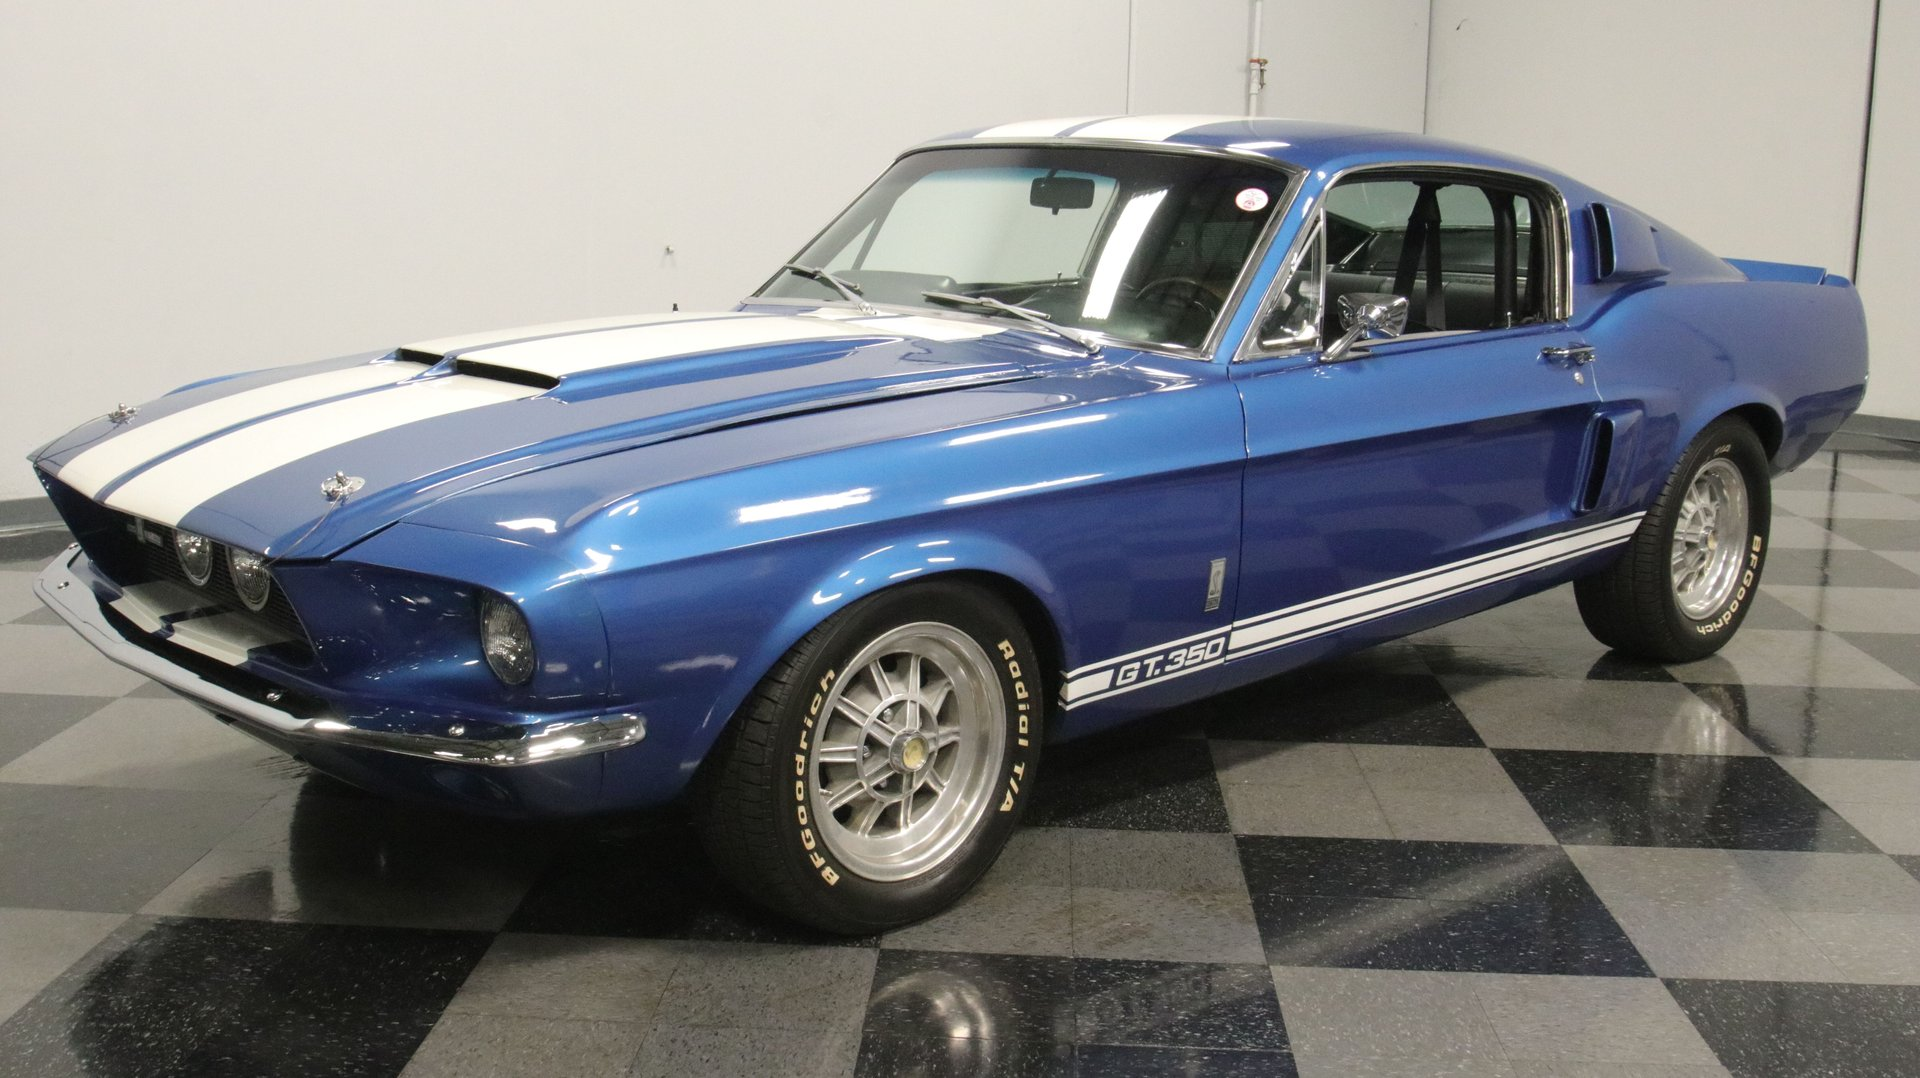 1967 Ford Mustang GT350 Shelby 289 ci V8 HiPo Boite manuelle